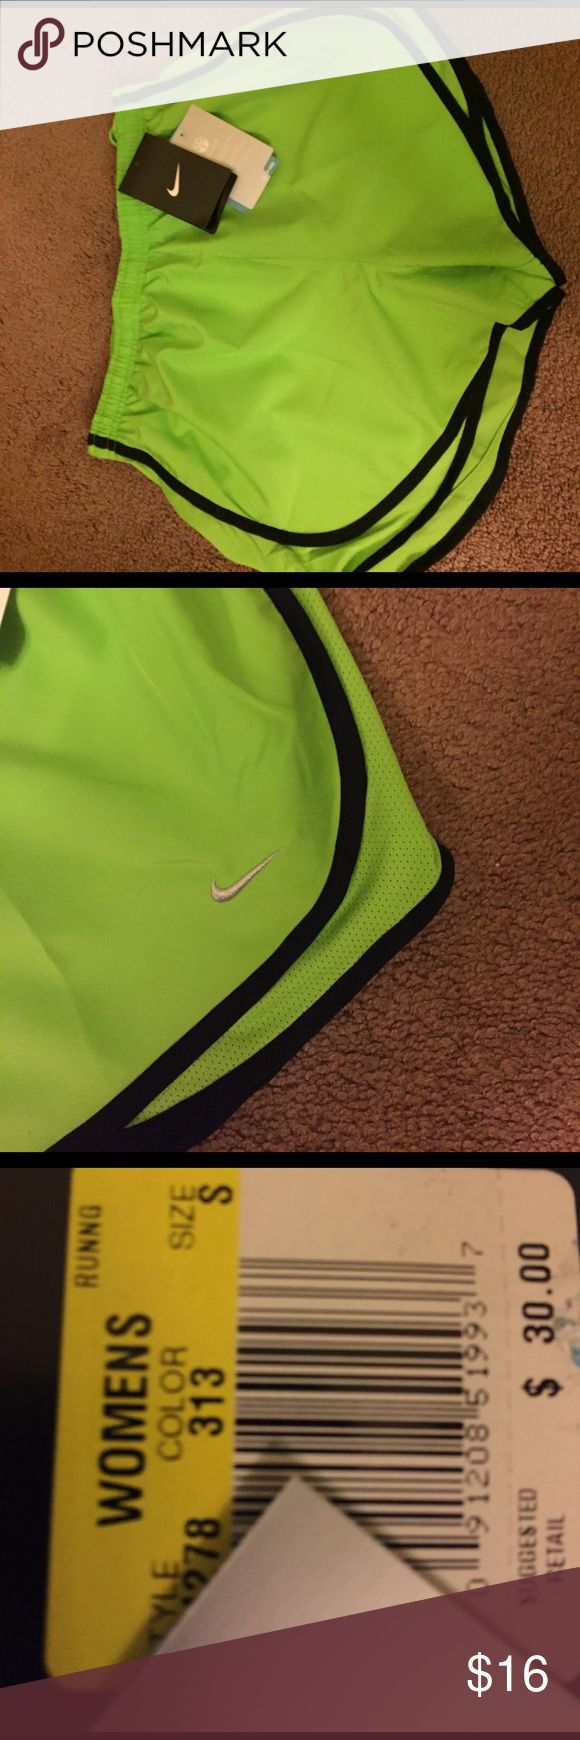 Nike dry fit running shorts Neon green with black lining new With tags silver Nike symbol left lower corner and breathable sides dry fit material Nike Shorts